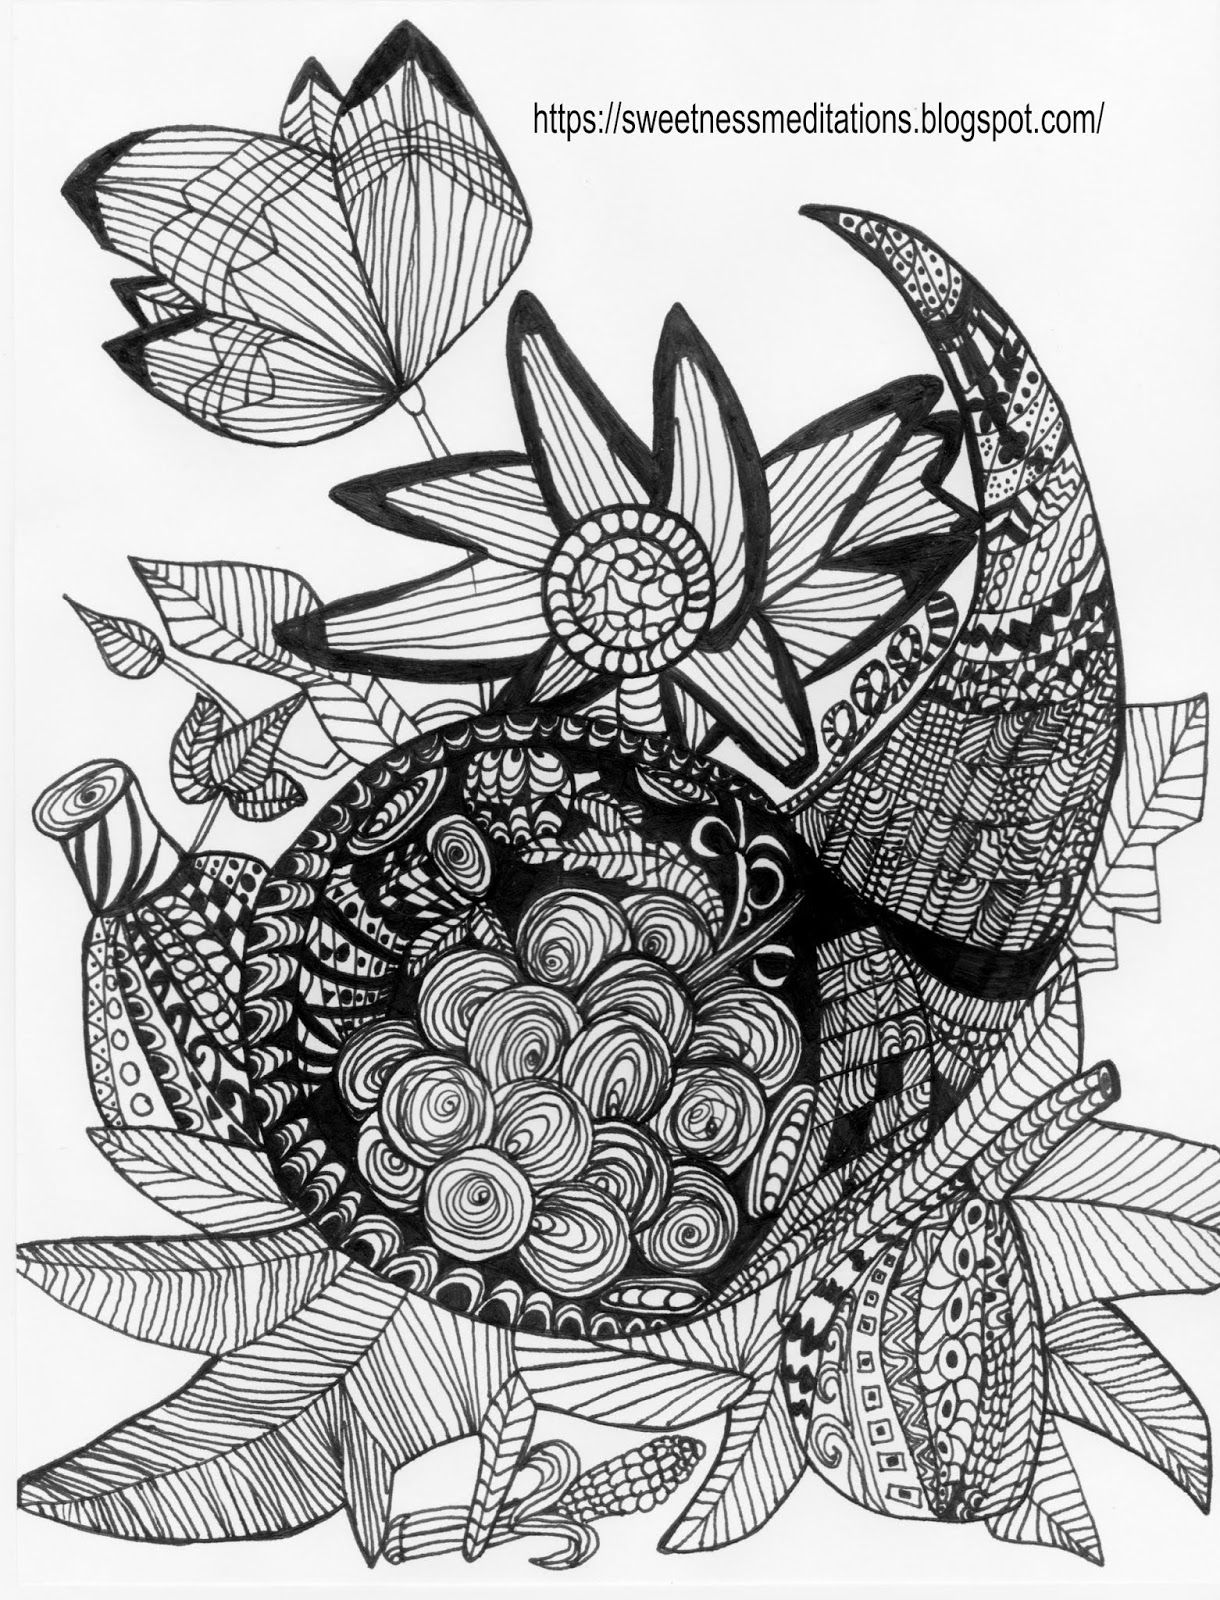 picture of cornucopia to color sweetness meditations thanksgiving coloring pages cornucopia cornucopia picture of color to